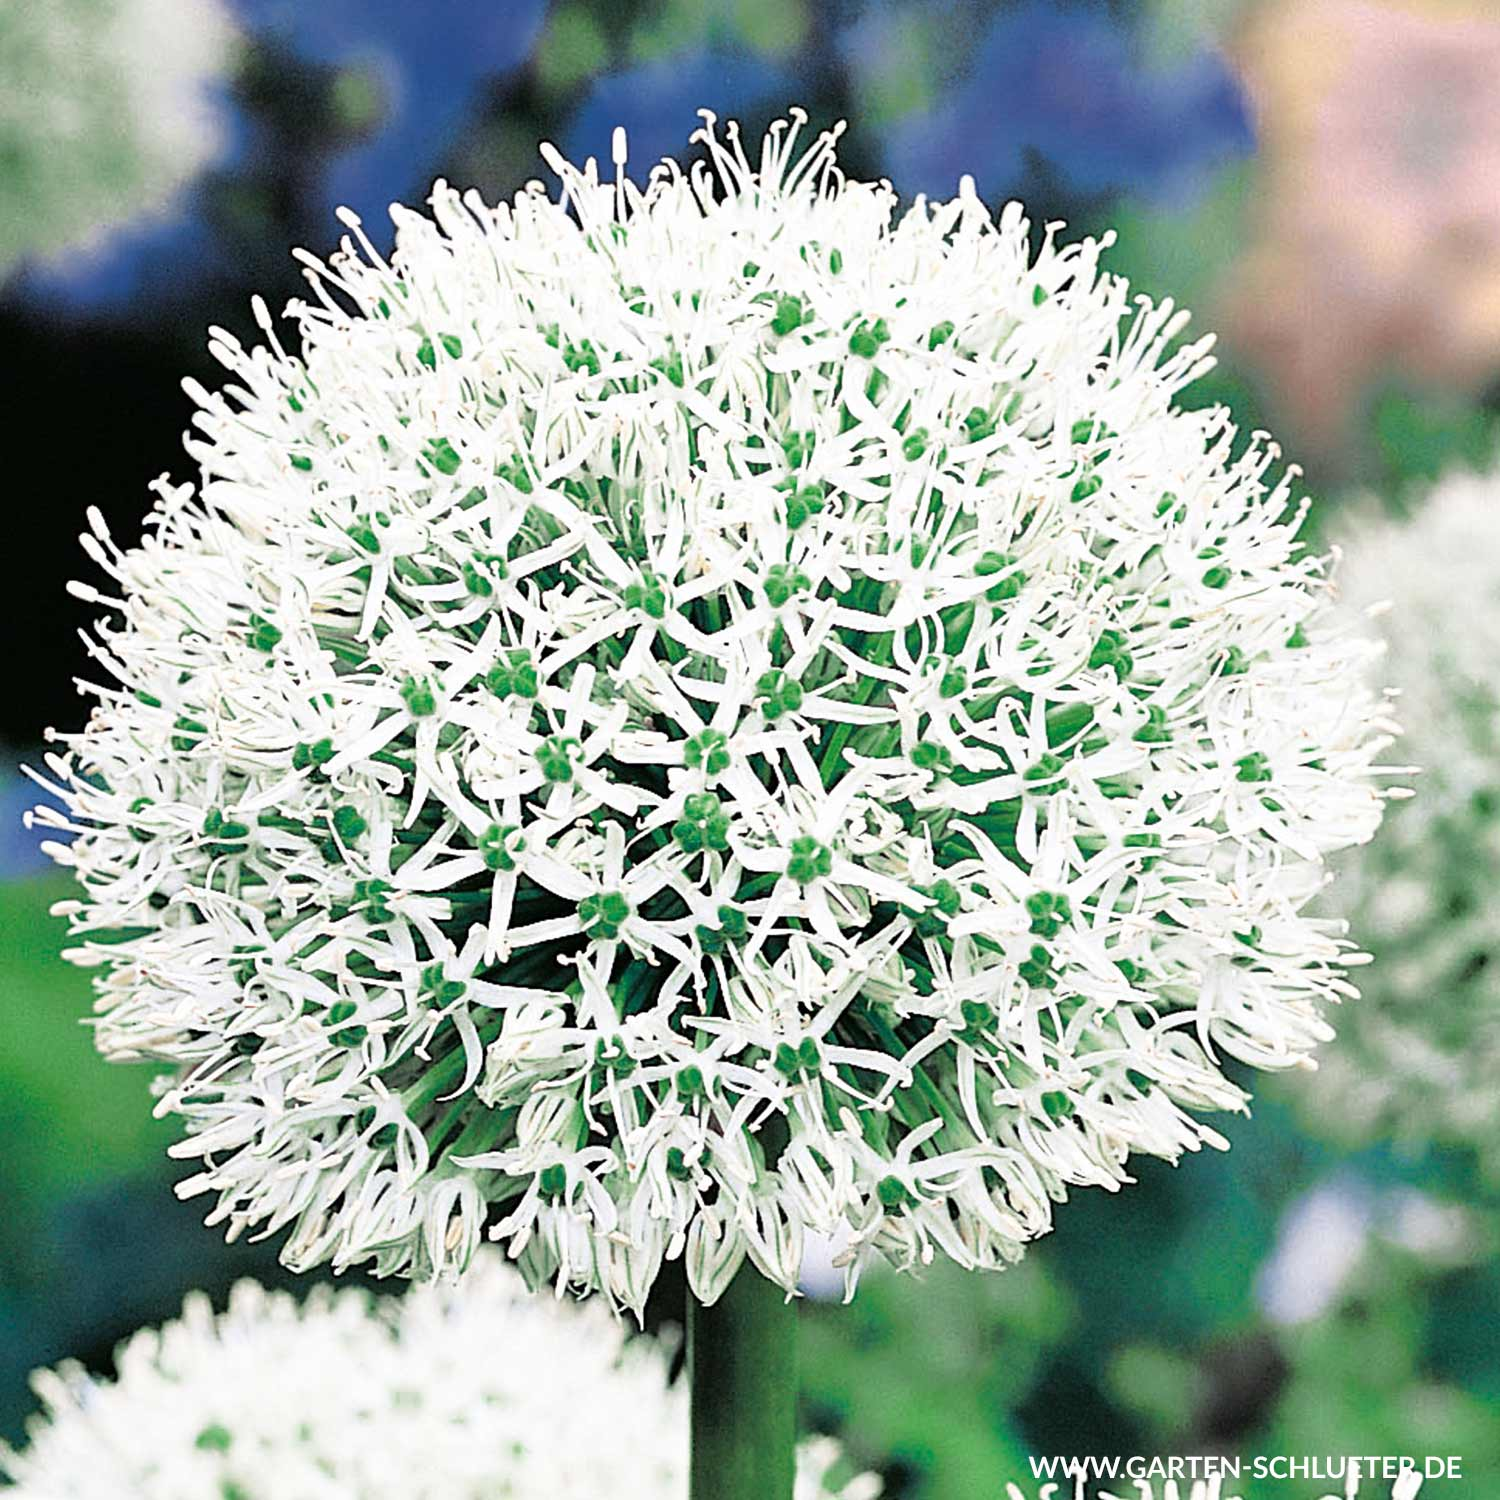 Zierlauch Trocknen Allium 'mount Everest' - 1 Stück - Allium 'mount Everest' - Allium | Garten SchlÜter